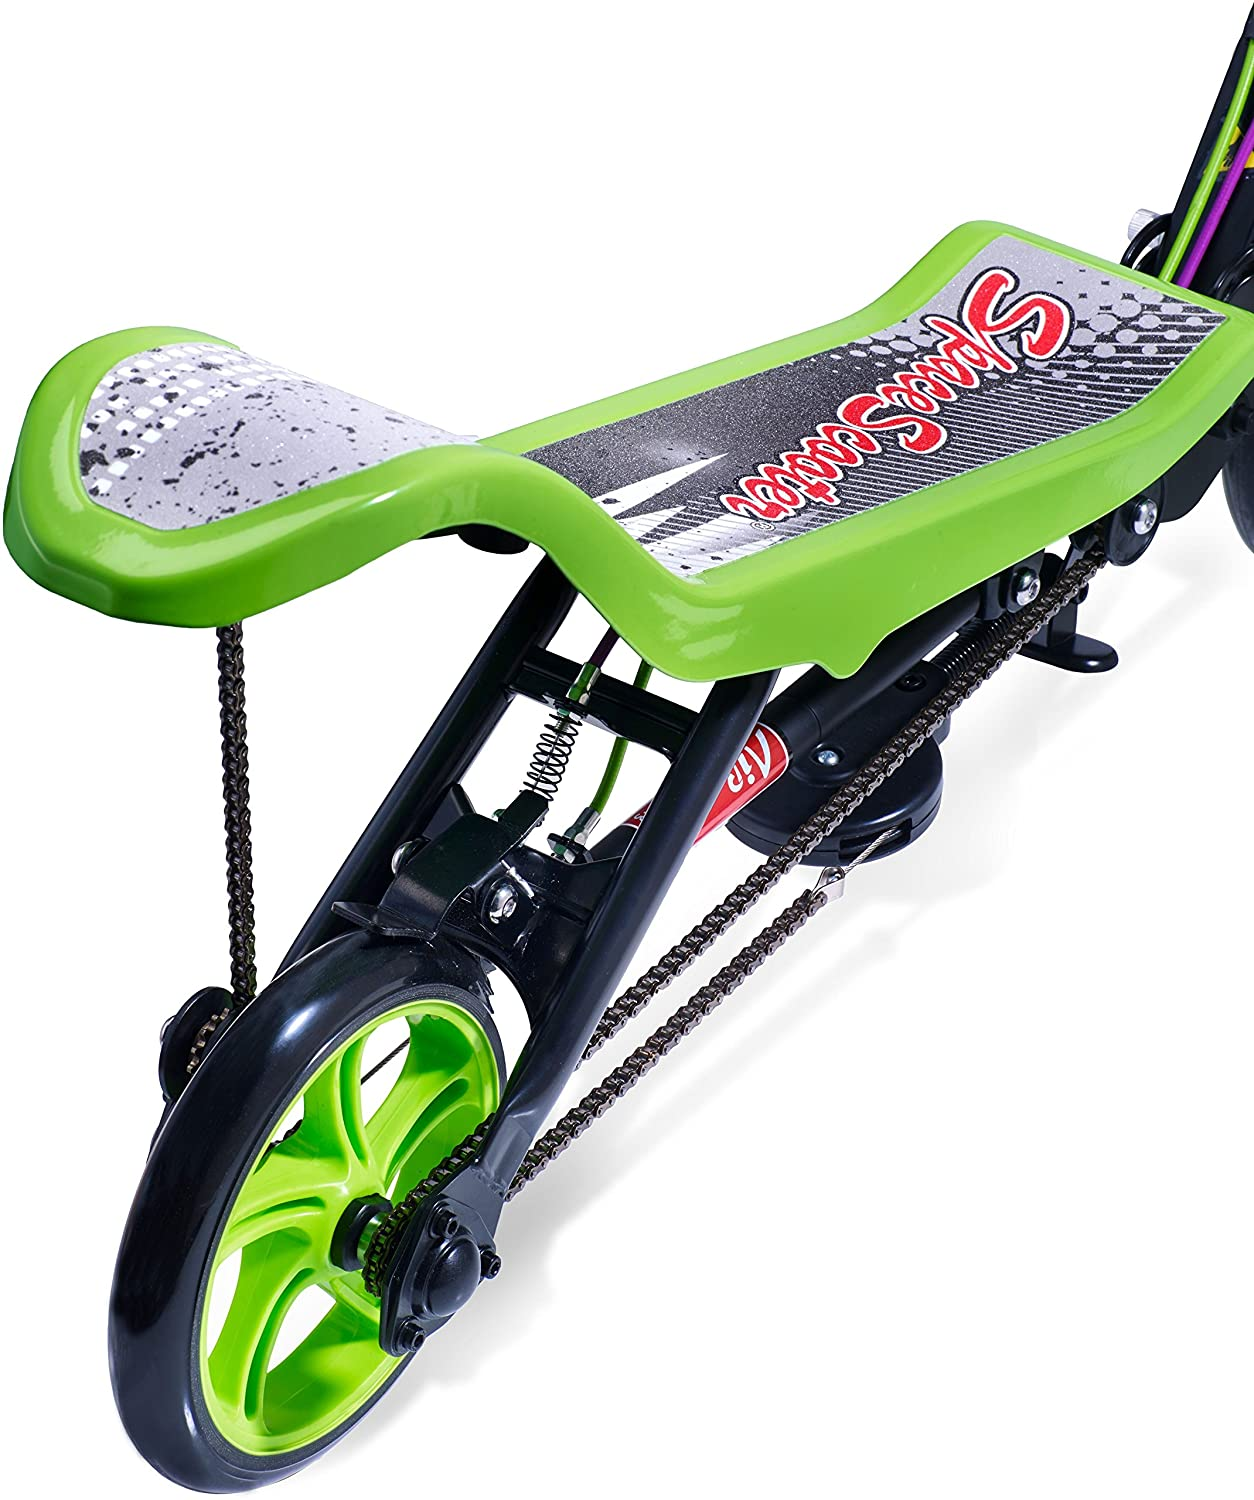 Space Scooter X580 Push Board Seesaw Kids Scooter with Brake Air Suspension /& Compact Fold Black